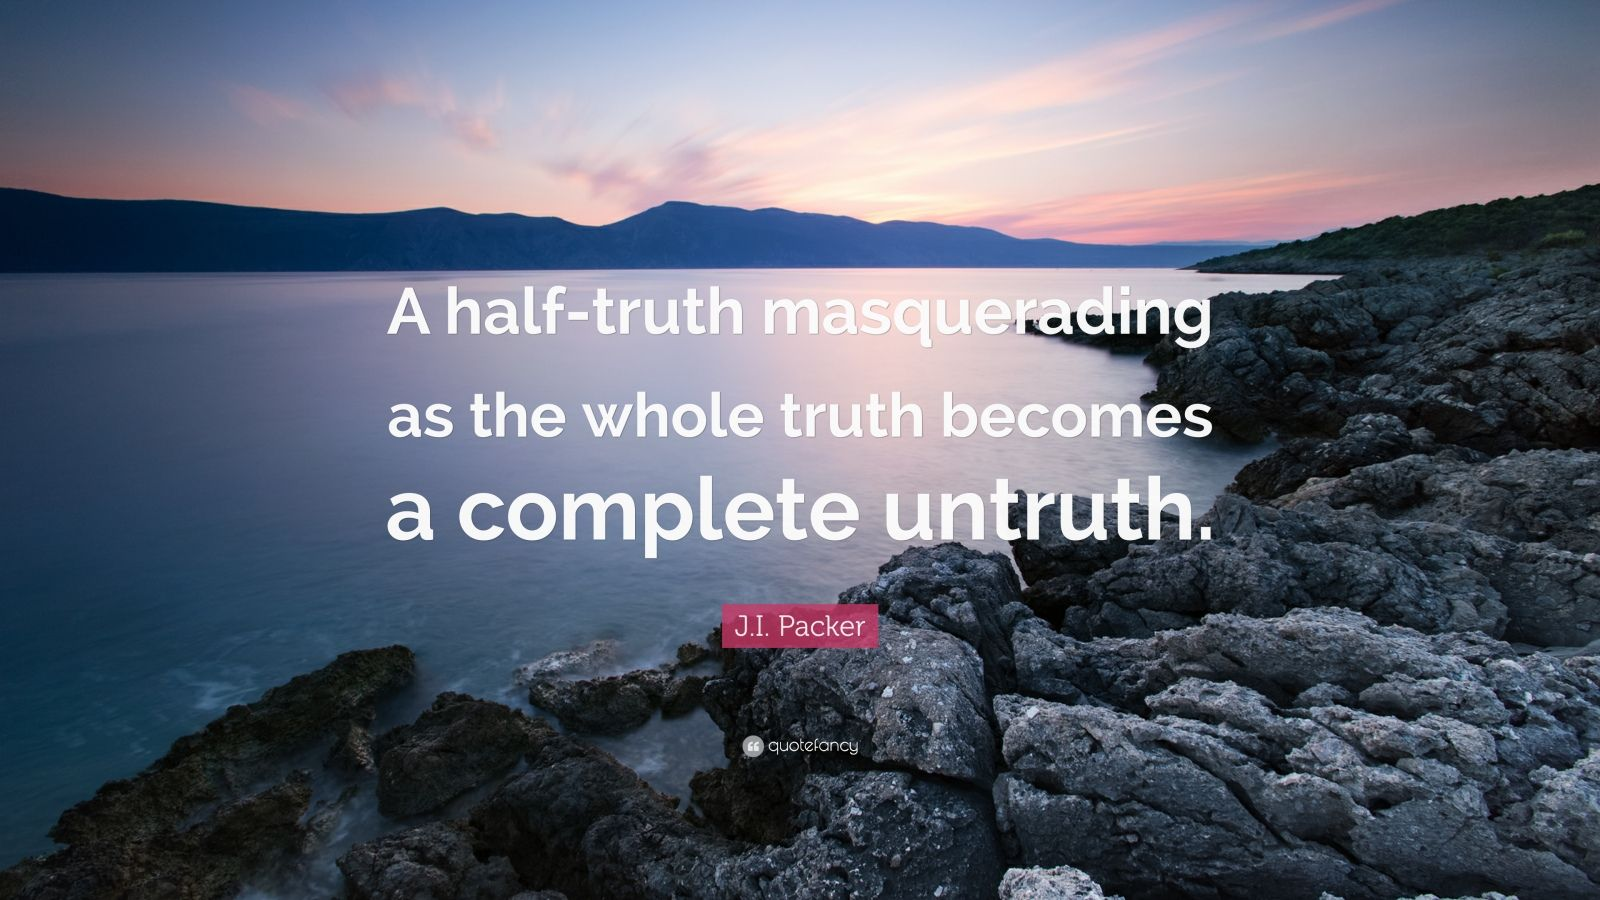 """J.I. Packer Quote: """"A half-truth masquerading as the whole truth becomes a complete untruth."""""""